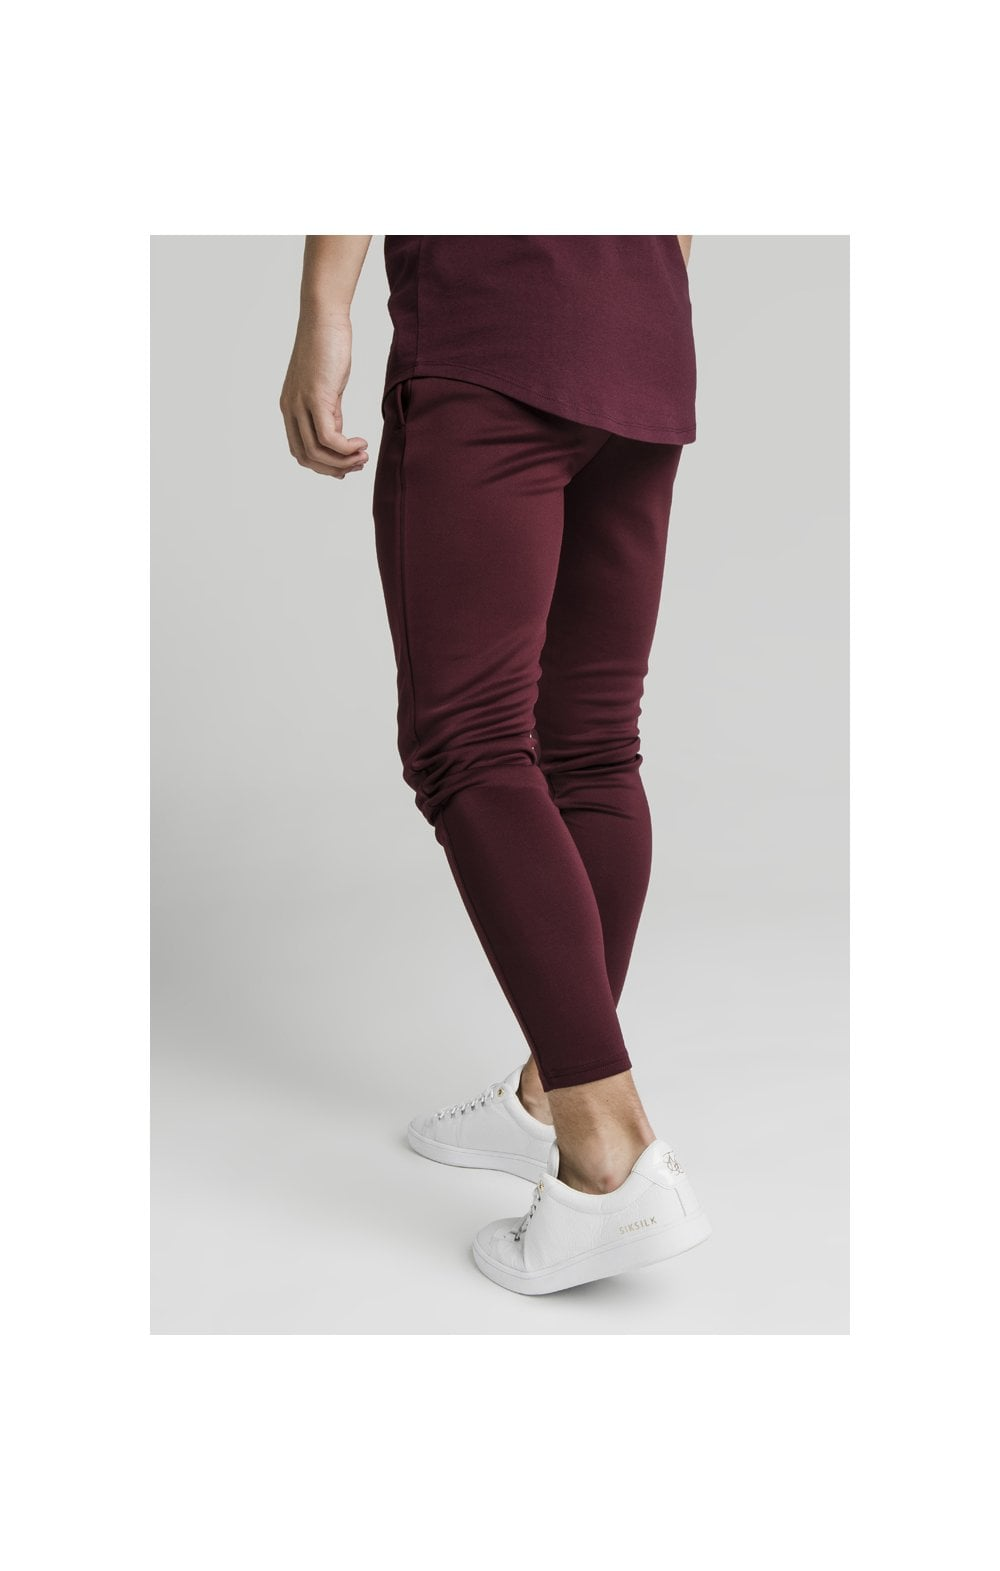 Load image into Gallery viewer, Illusive London Agility Track Pants - Burgundy (3)